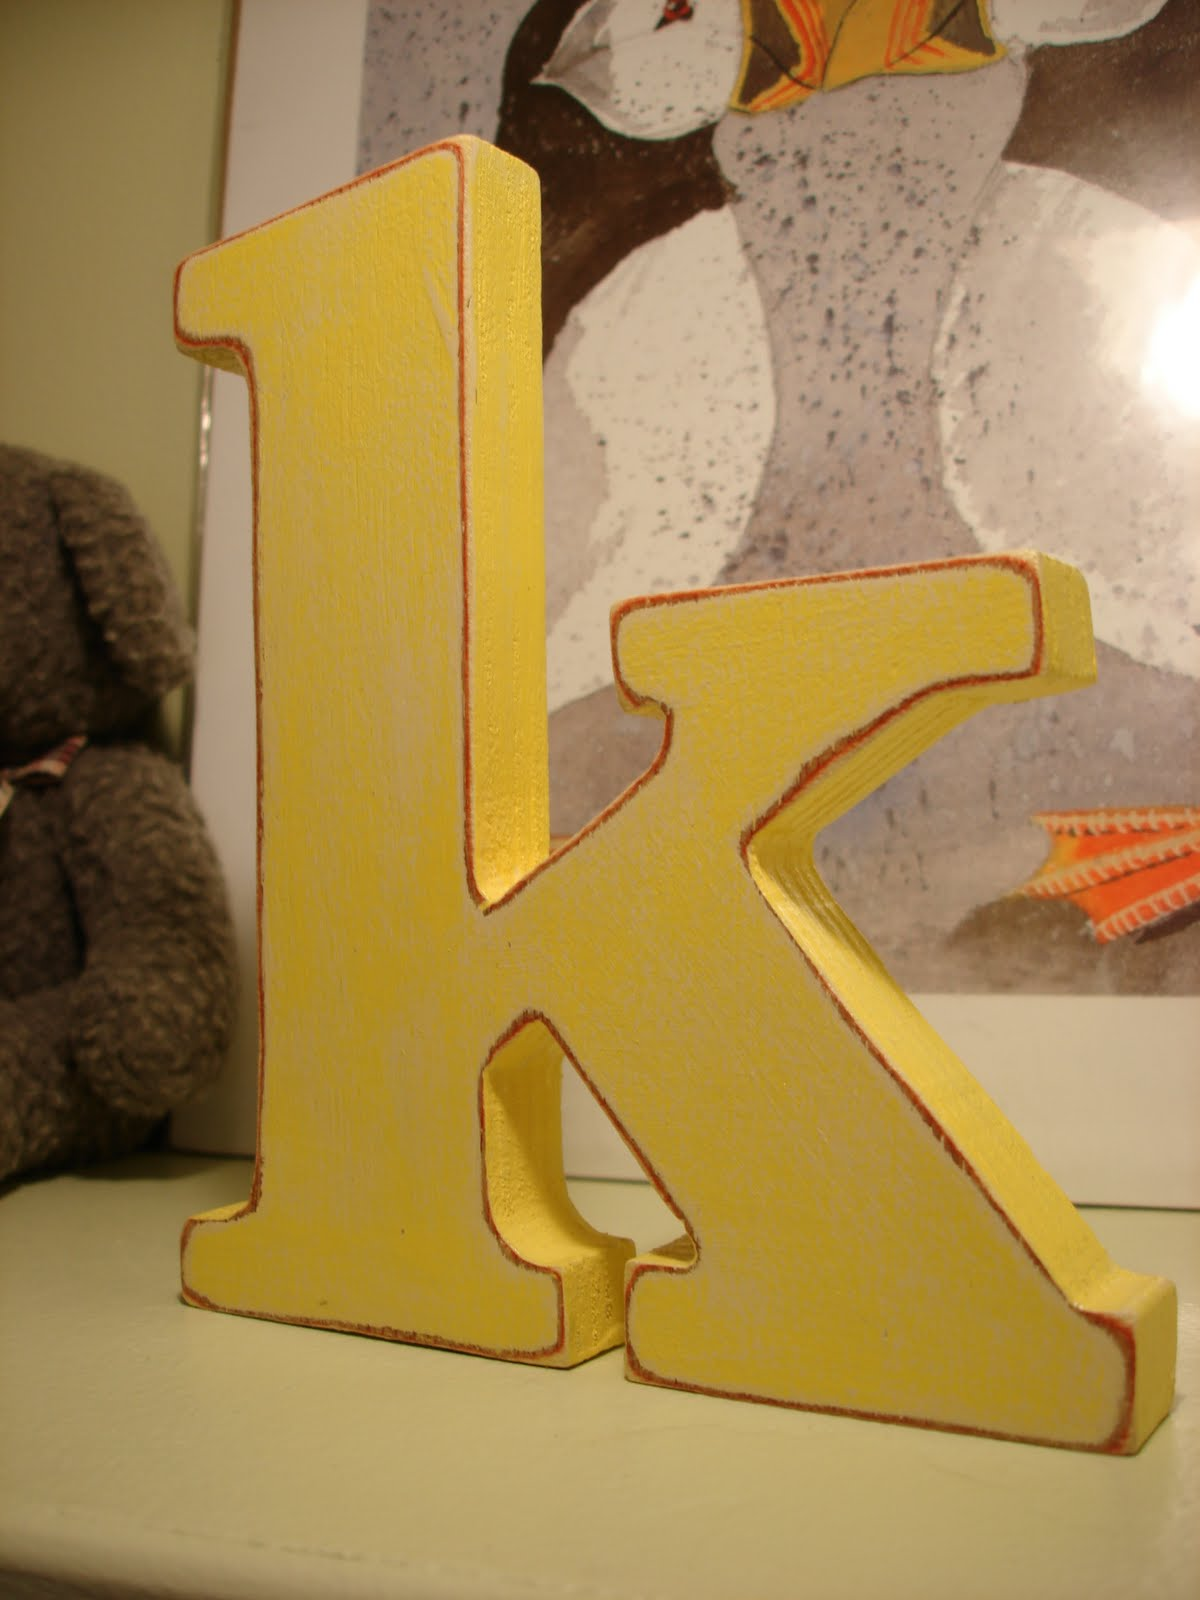 Patent Pending Projects Shop Childrens Wooden Letters